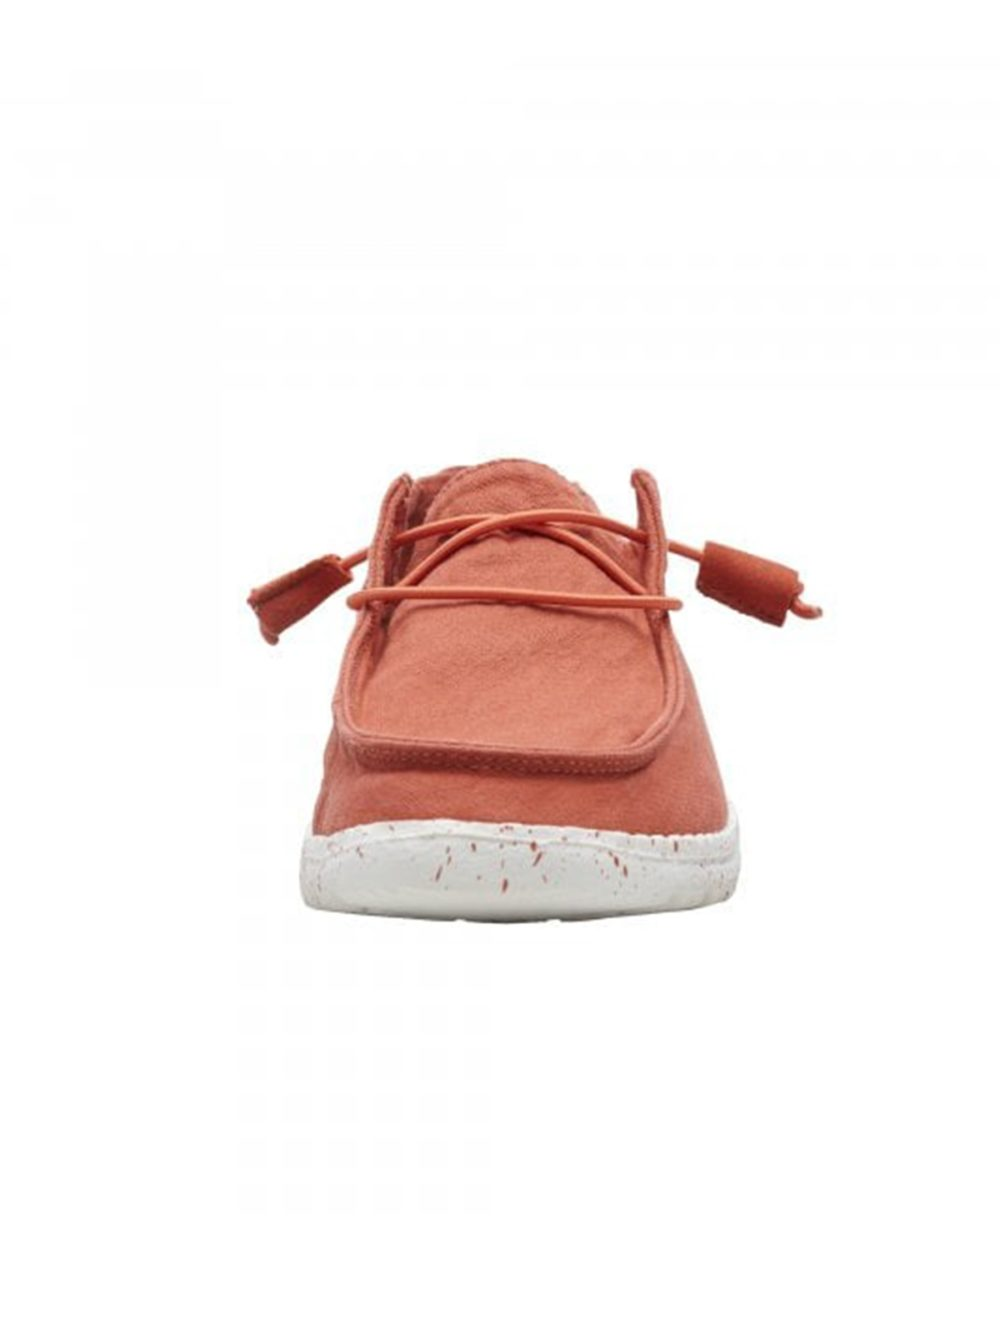 Wendy Sandstone Canvas Hey Dude Shoes Katie Kerr Women's Clothing